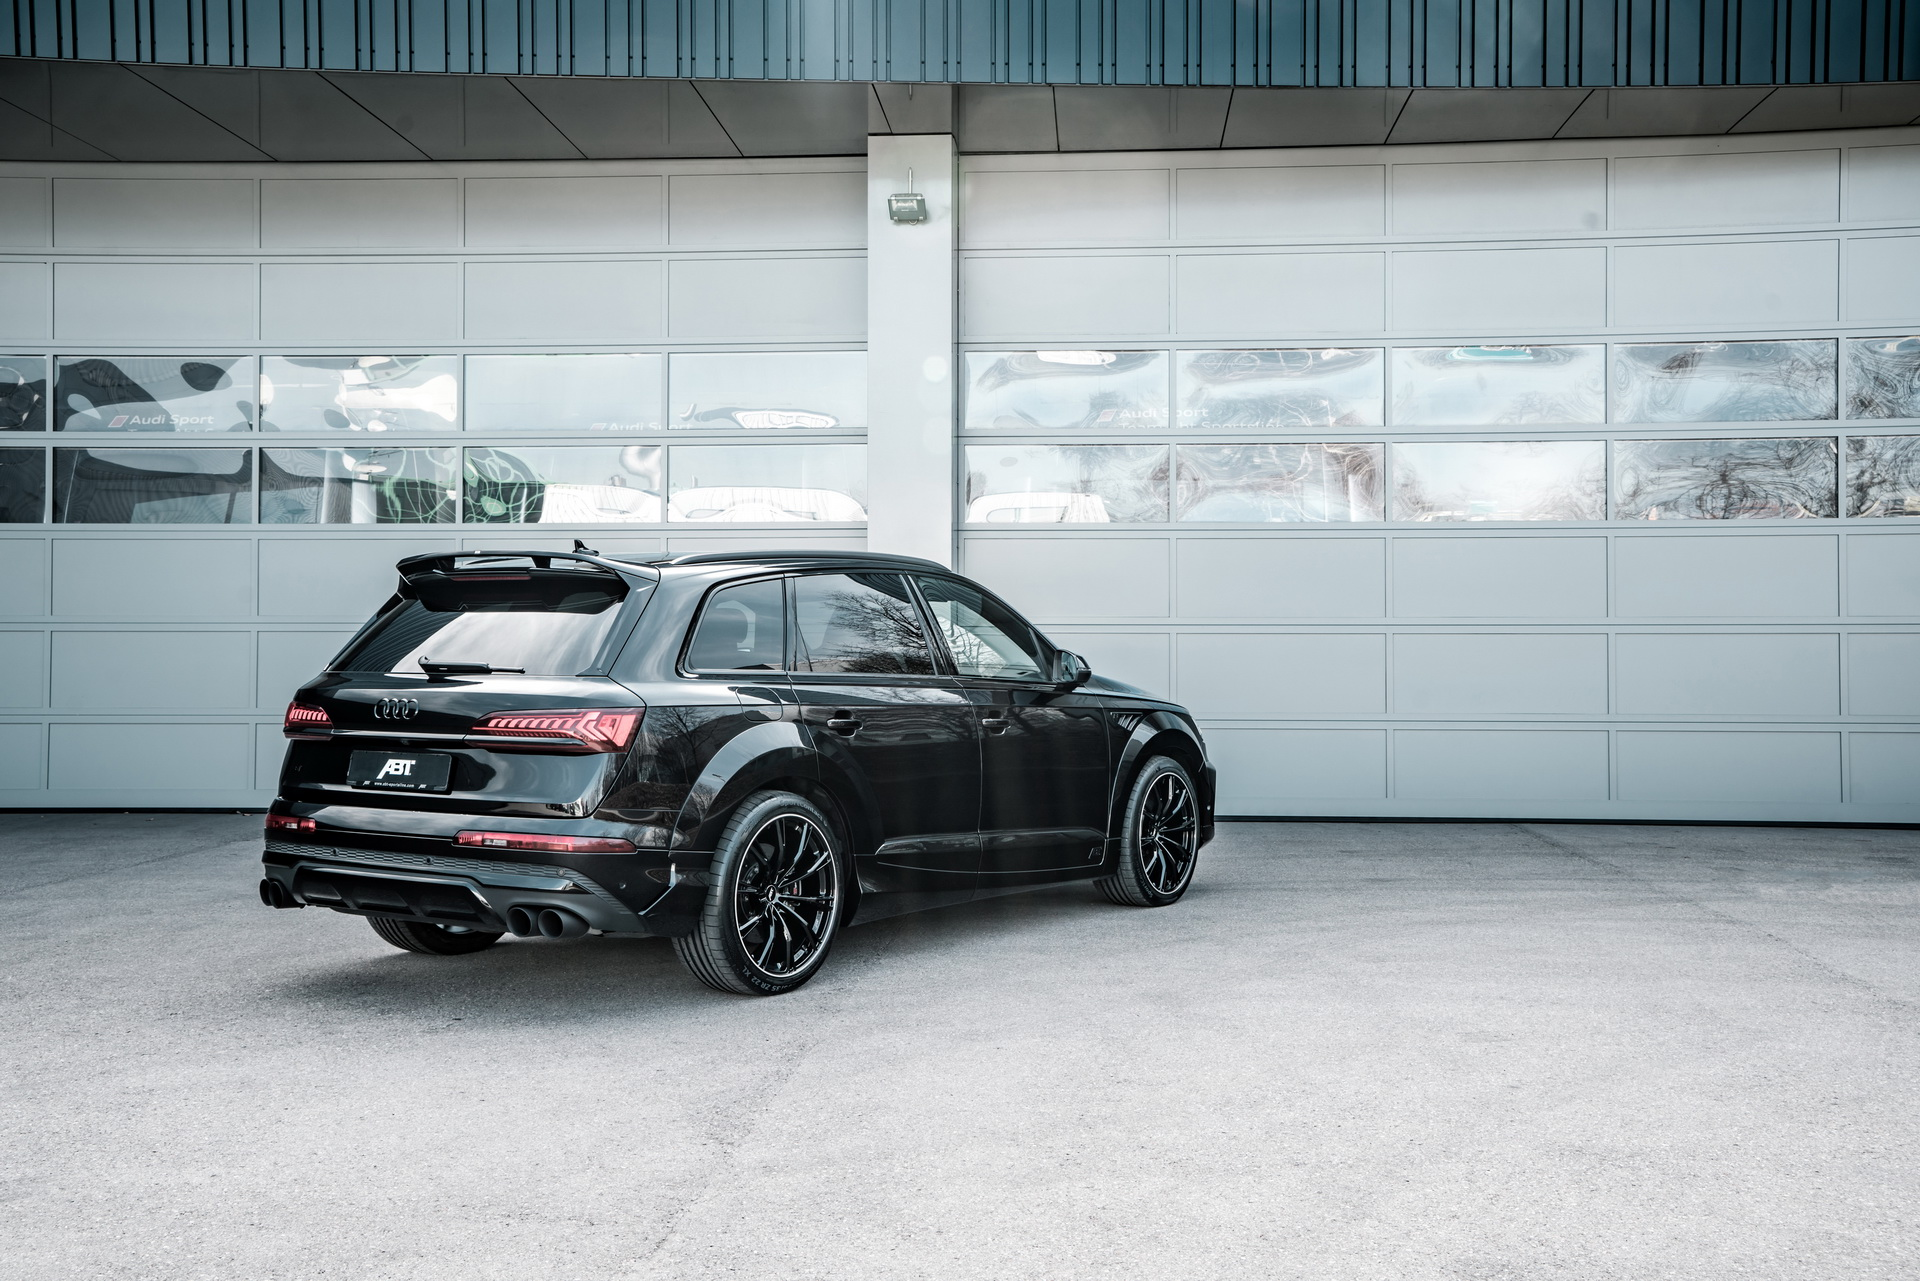 Audi_SQ7_ABT_bodykit_0020